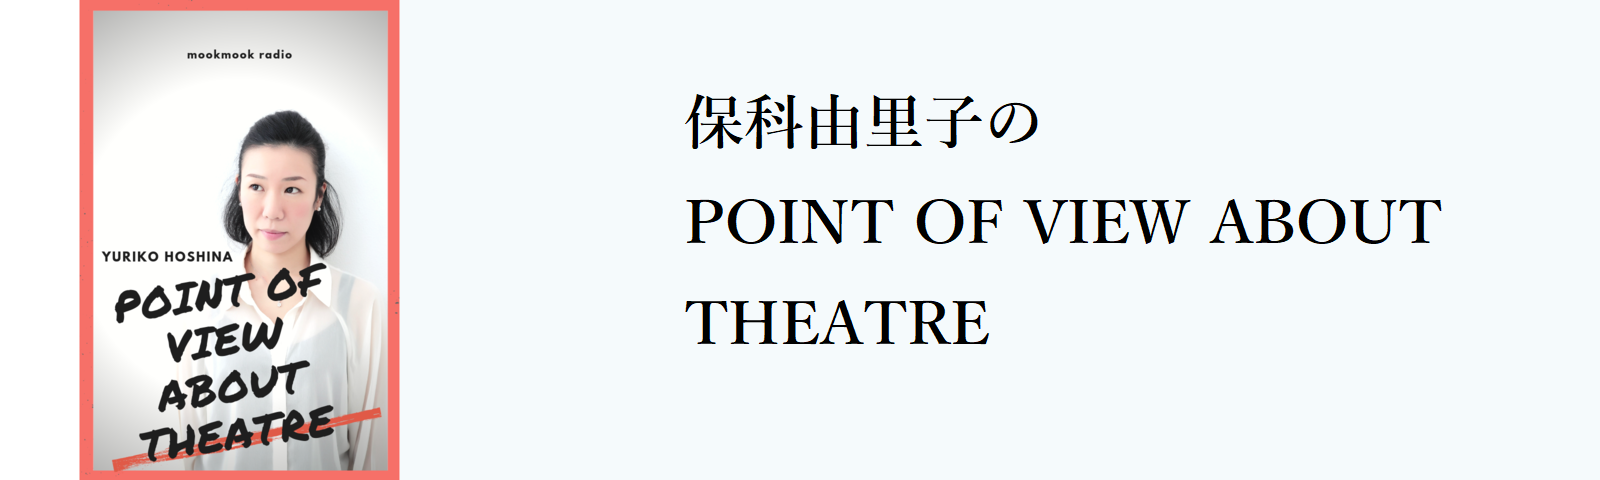 保科由里子のPOINT OF VIEW ABOUT THEATRE